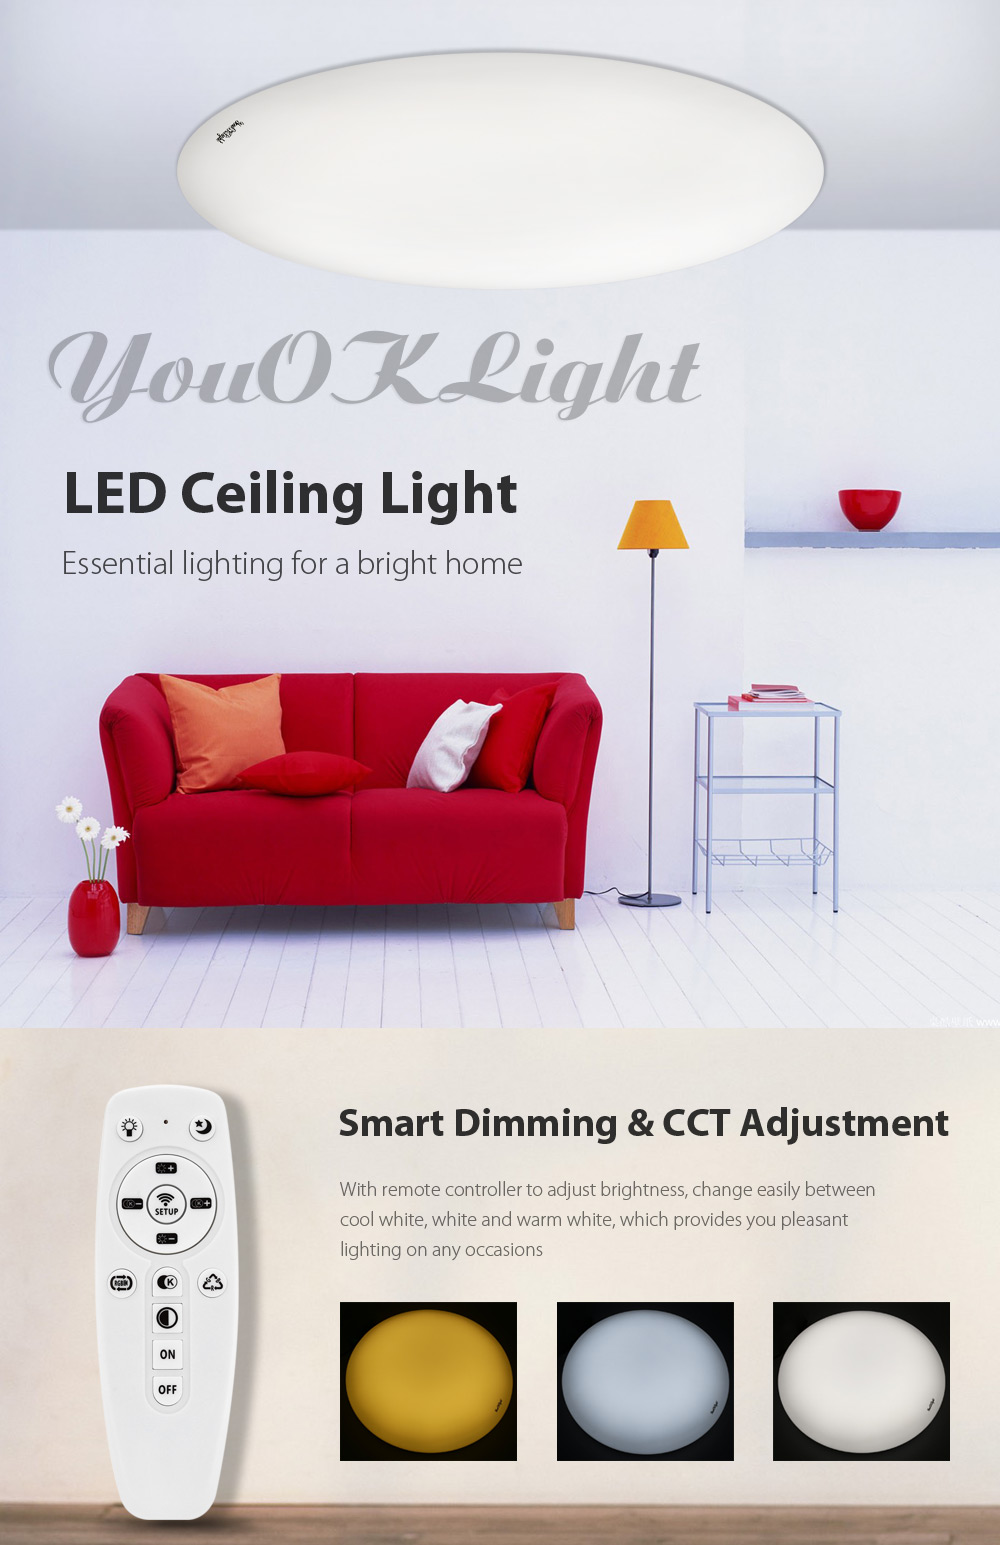 youoklight remote control led ceiling light 110v-$21.12 online